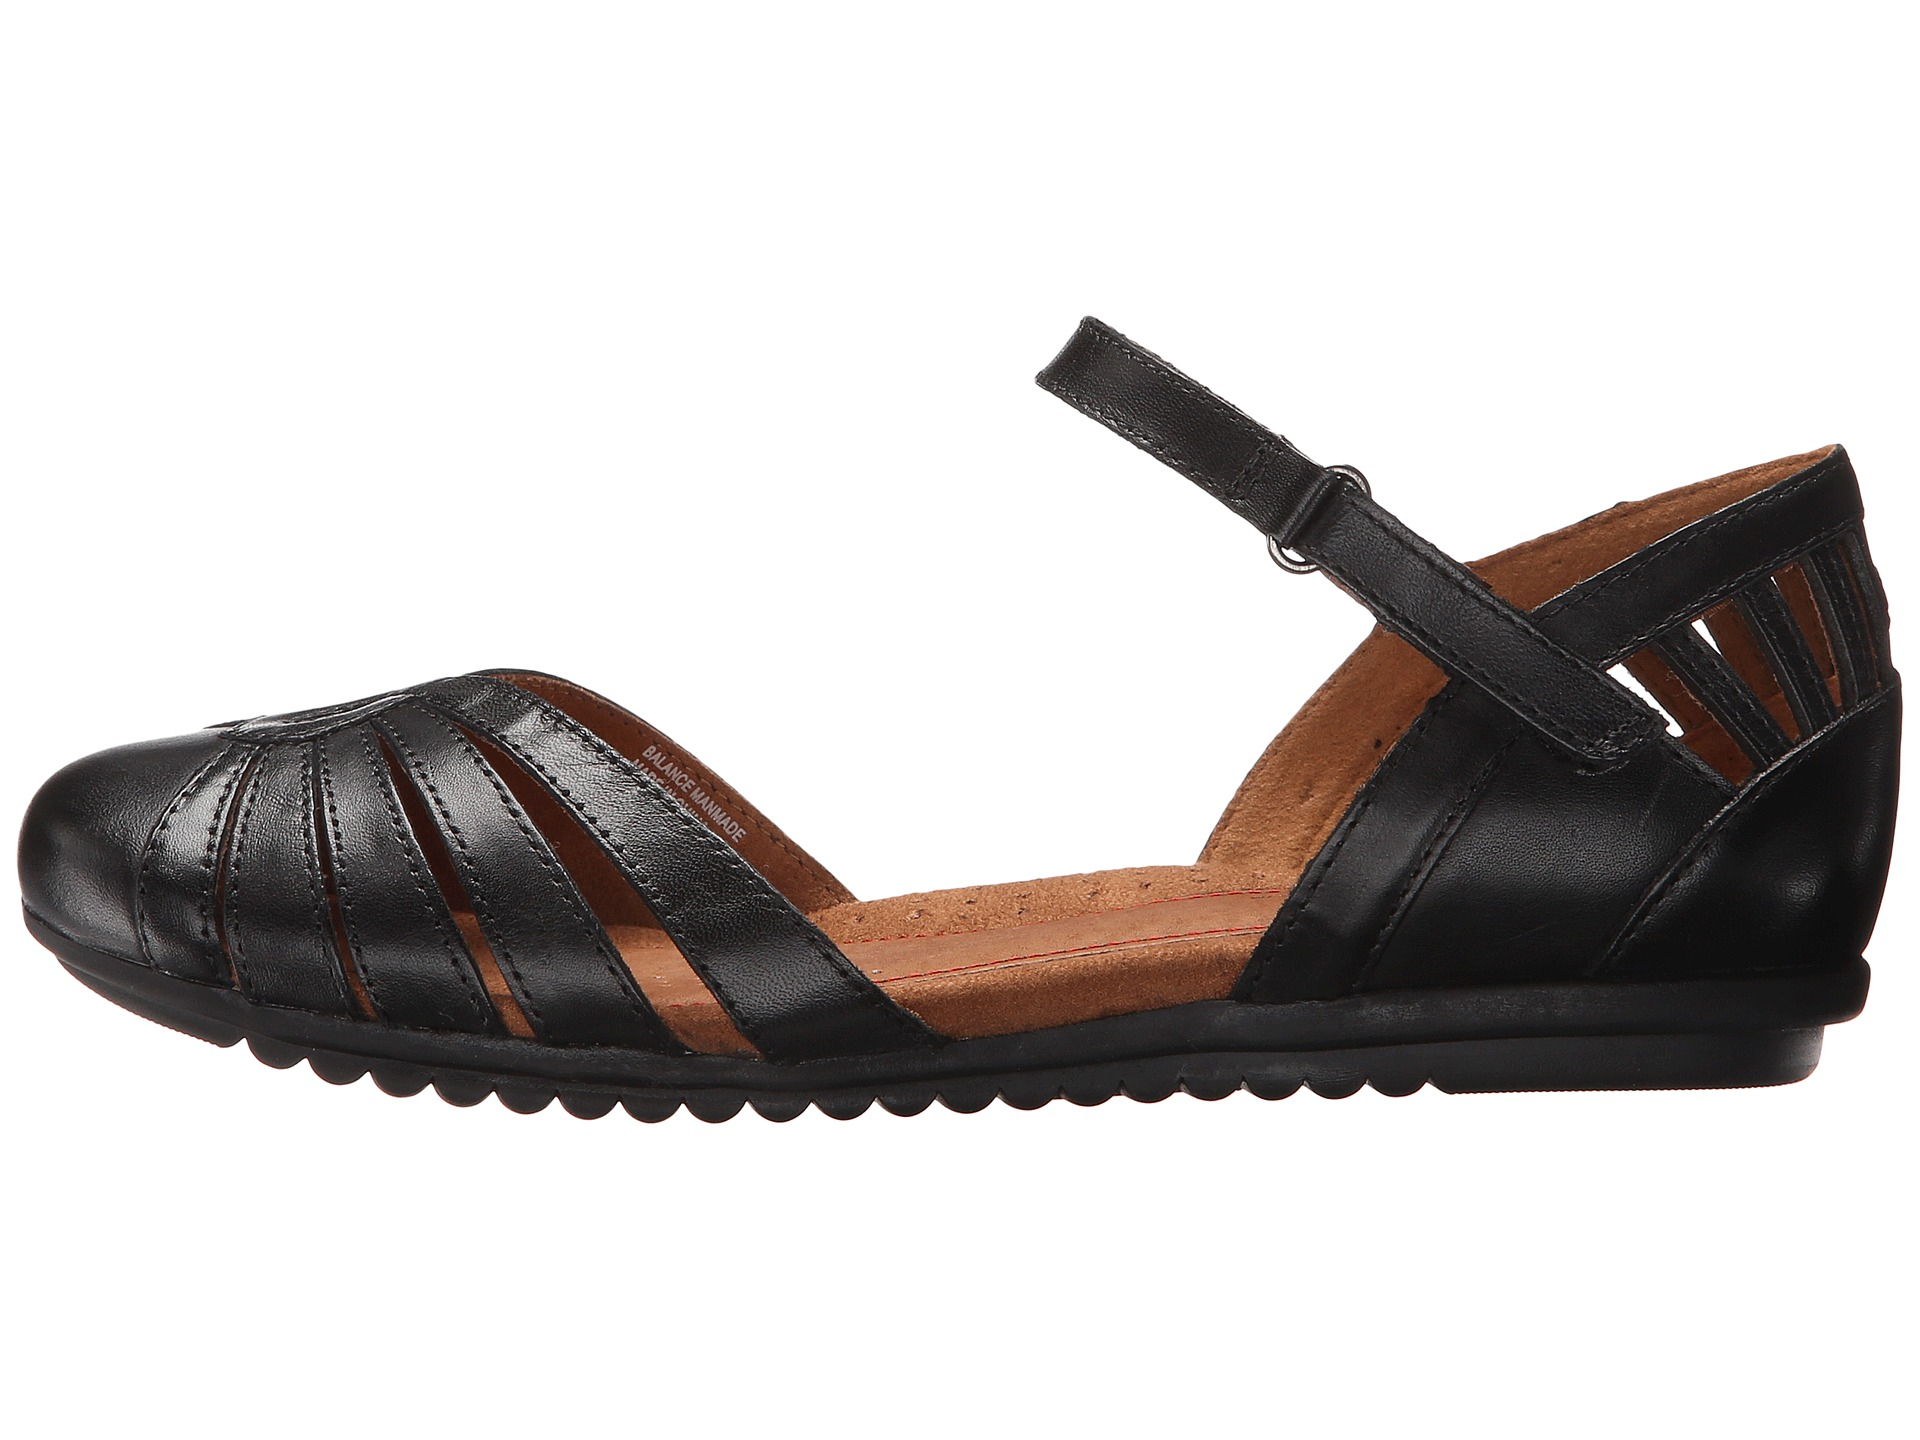 Rockport Leather Cobb Hill Irene In Black Lyst